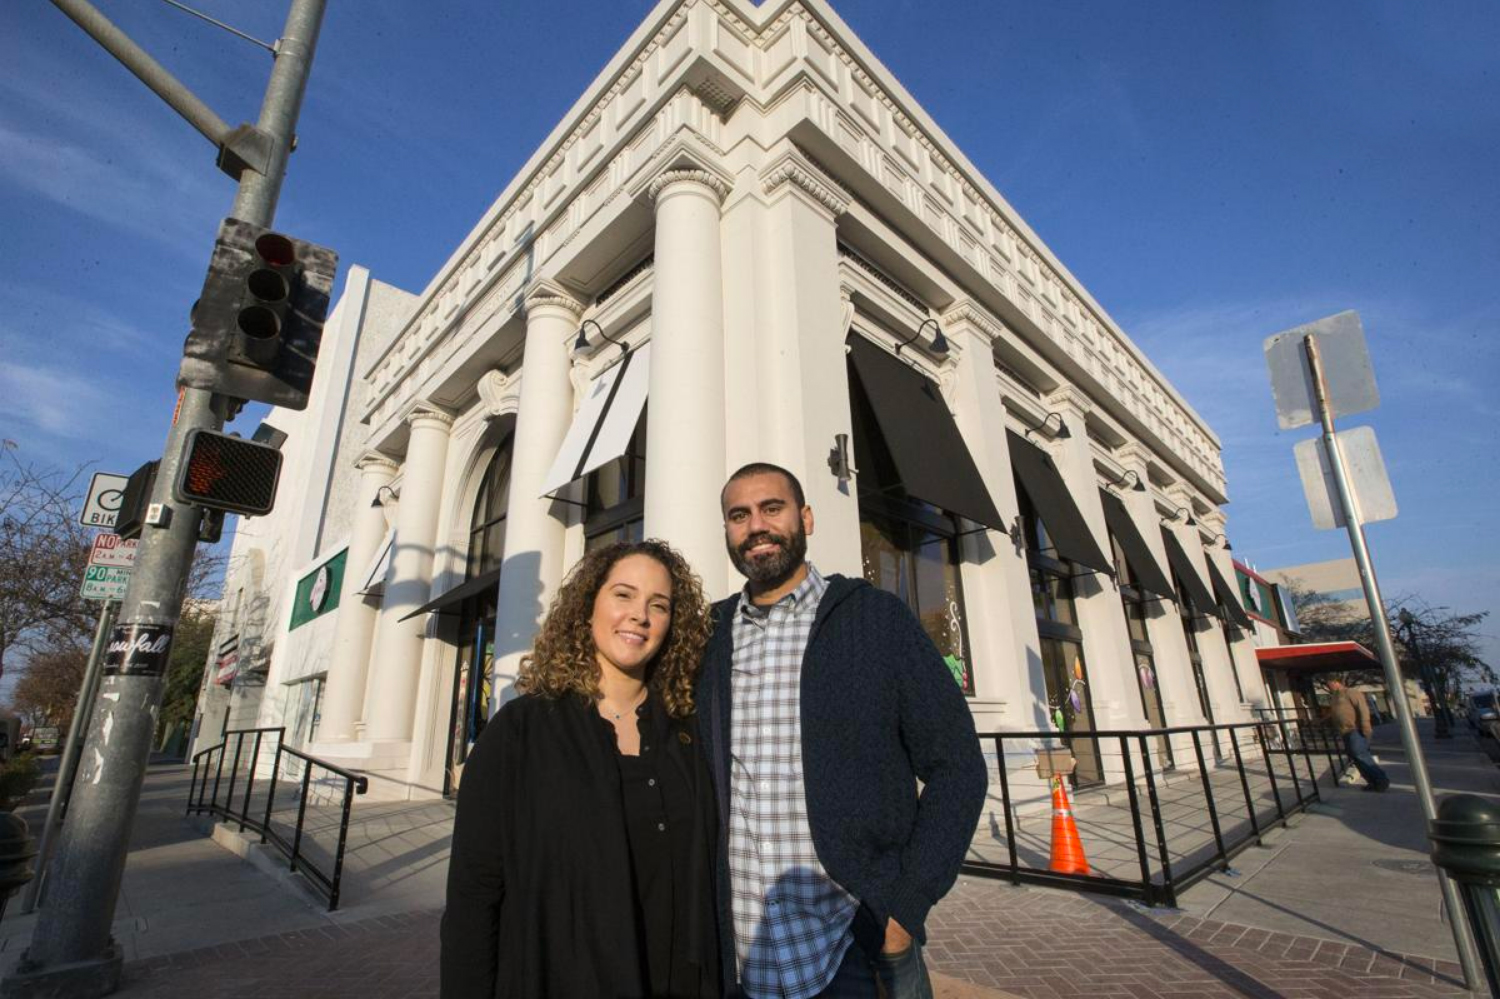 At ripe old age of 108, restored downtown building on verge of new life